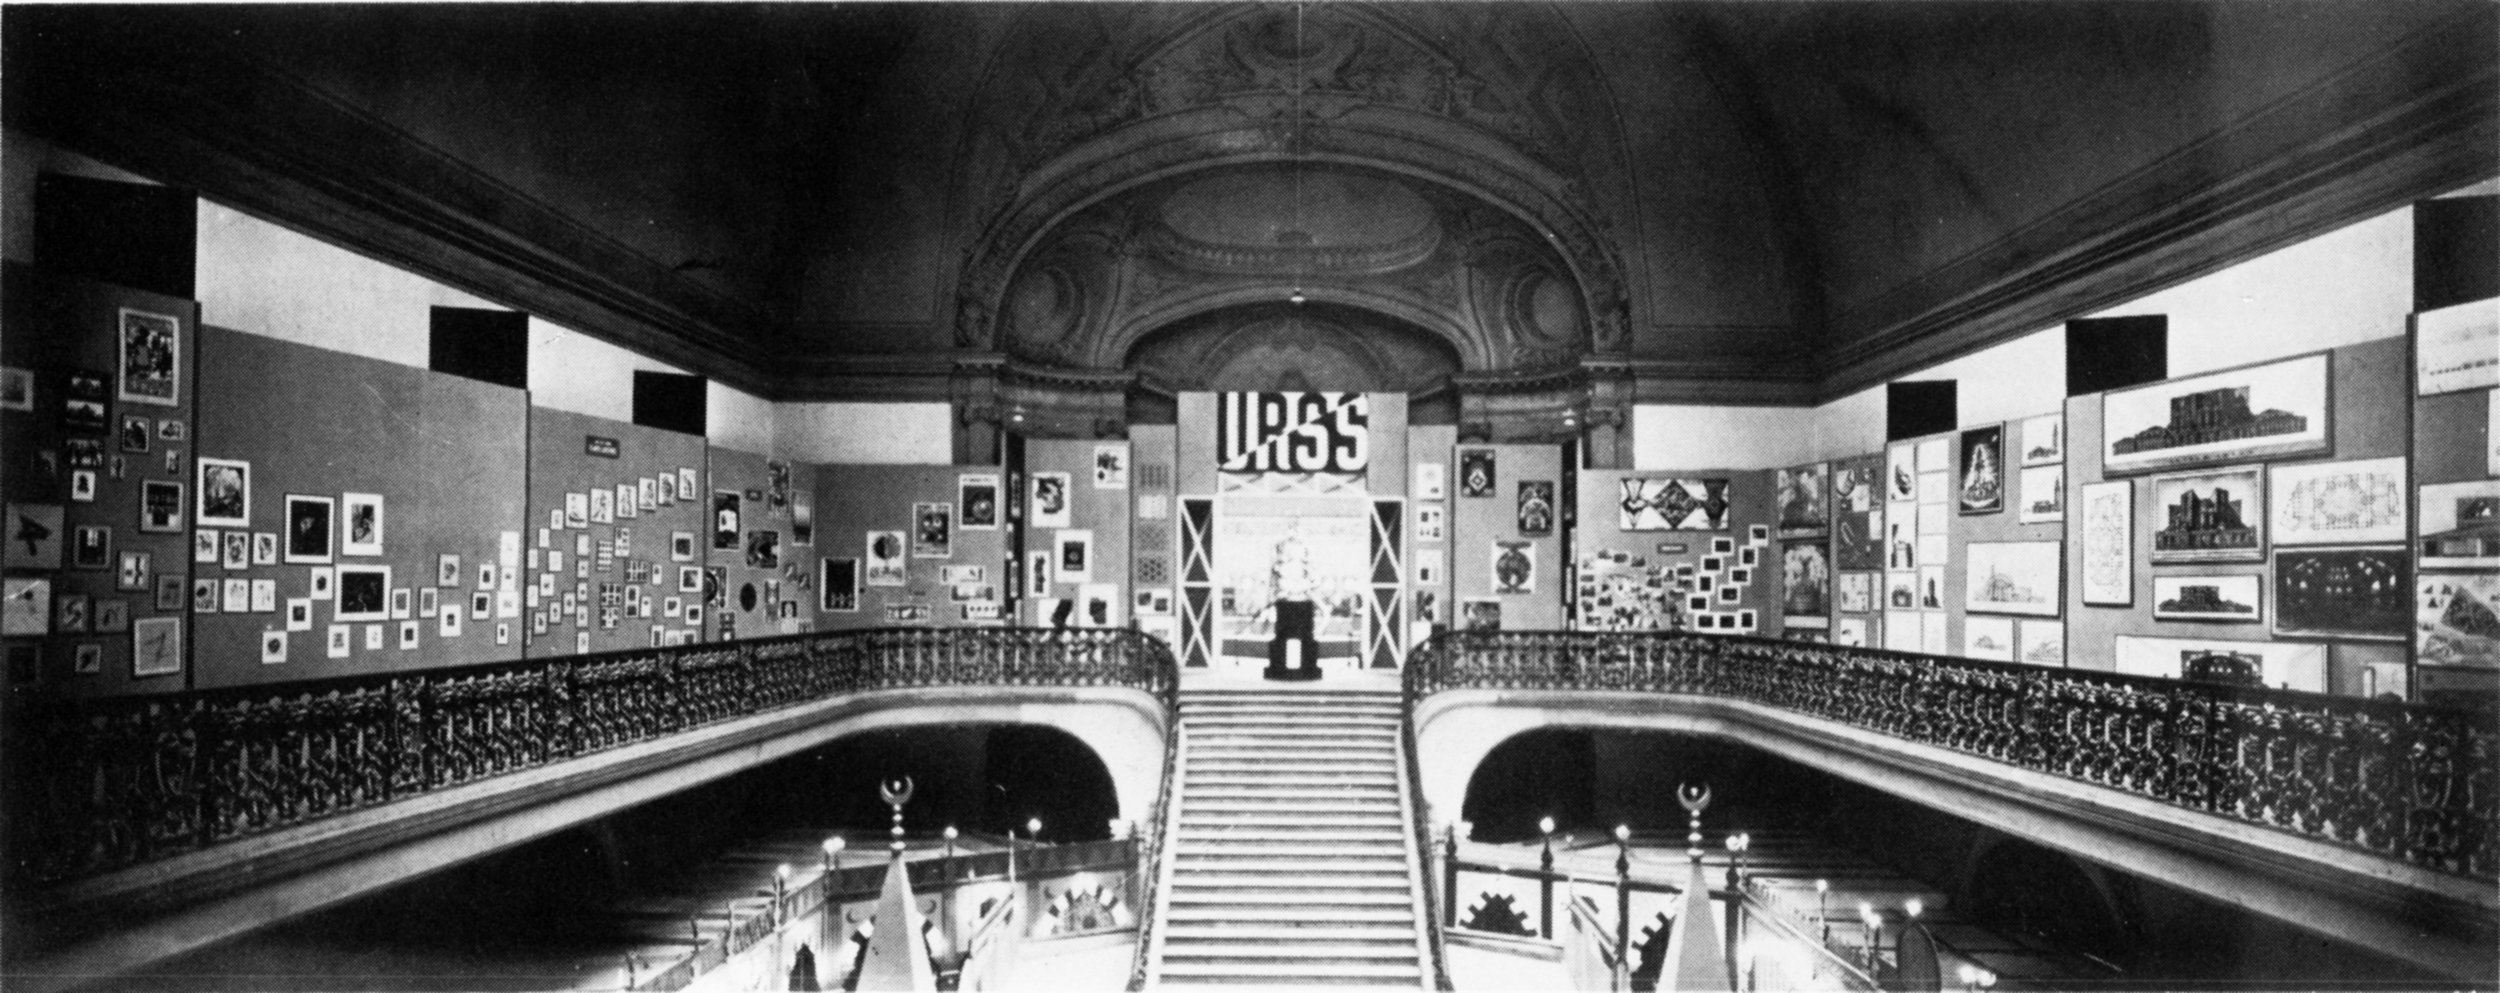 Interior of the Soviet pavilion at the International Exhibition of Modern Decorative and Industrial Arts in Paris. Tatlin's tower would be at the very top of the staircase.